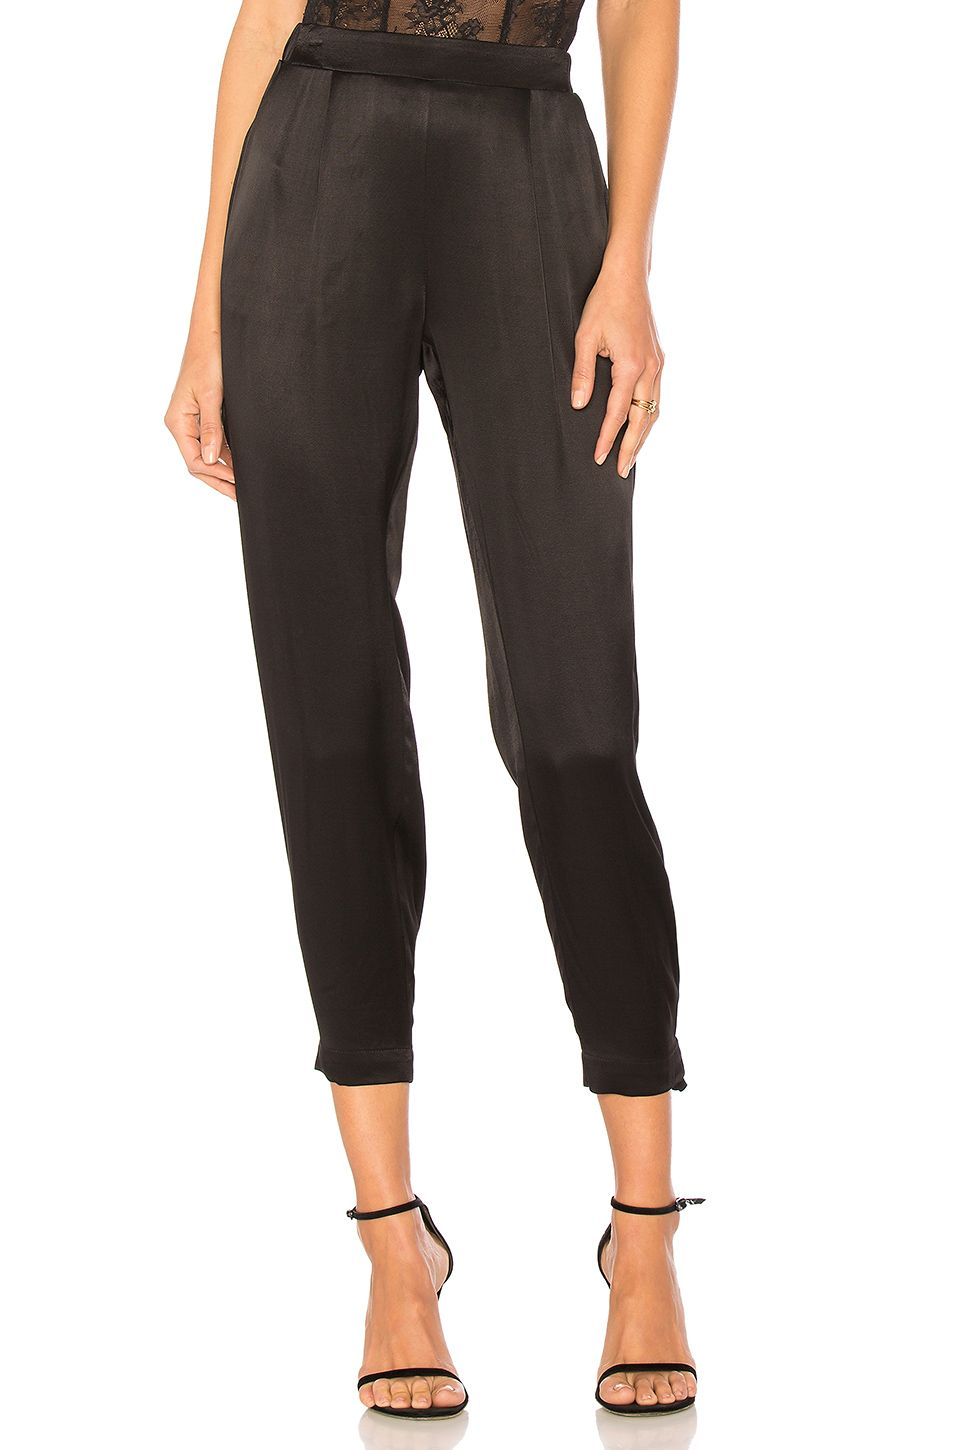 cdb1d3d8e005a6 Michael Stars Jogger Pant in Black | spring 2018 shopping list ...